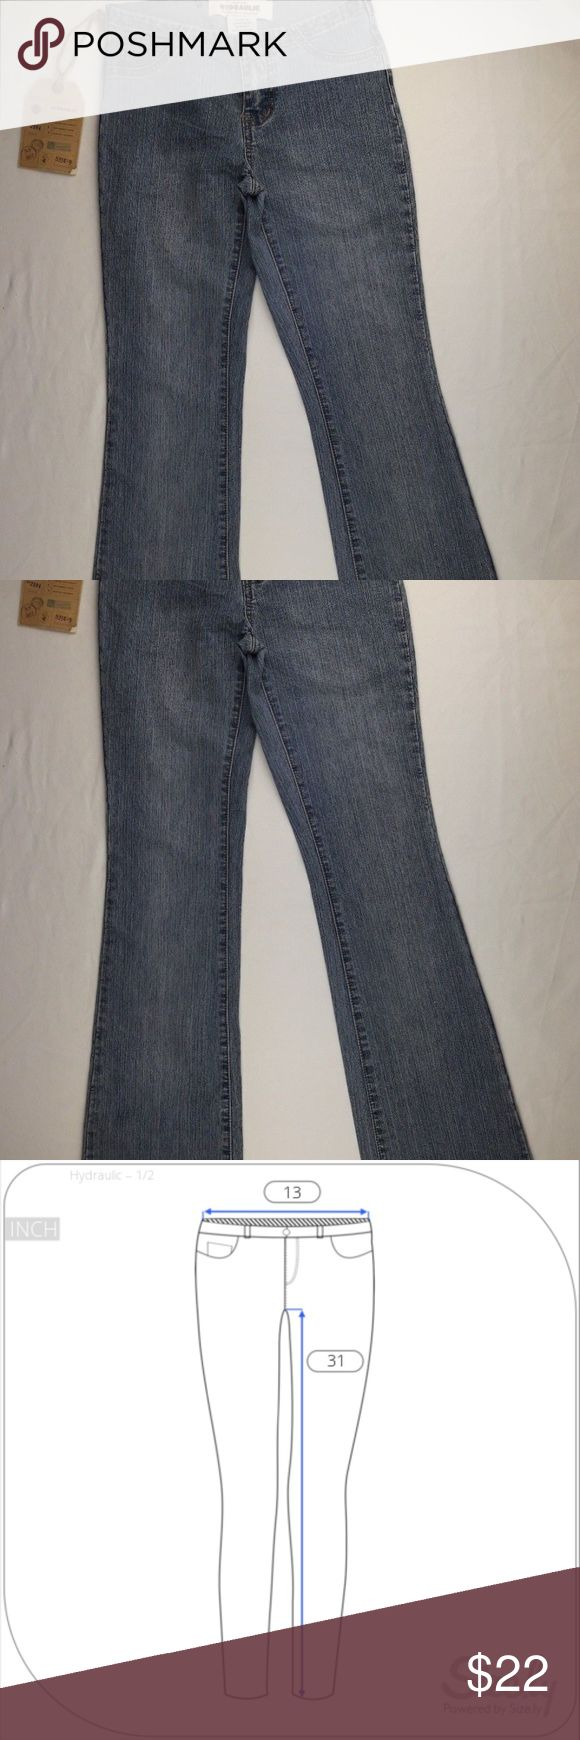 "Hydraulic Jeans Light Wash 26x31 Light wash Women's Hydraulic Jeans Size 1/2 Boot cut. Pretty good conditions.  Measurements: •Waist 26"" •Inseam 31"" Hydraulic Jeans Boot Cut"